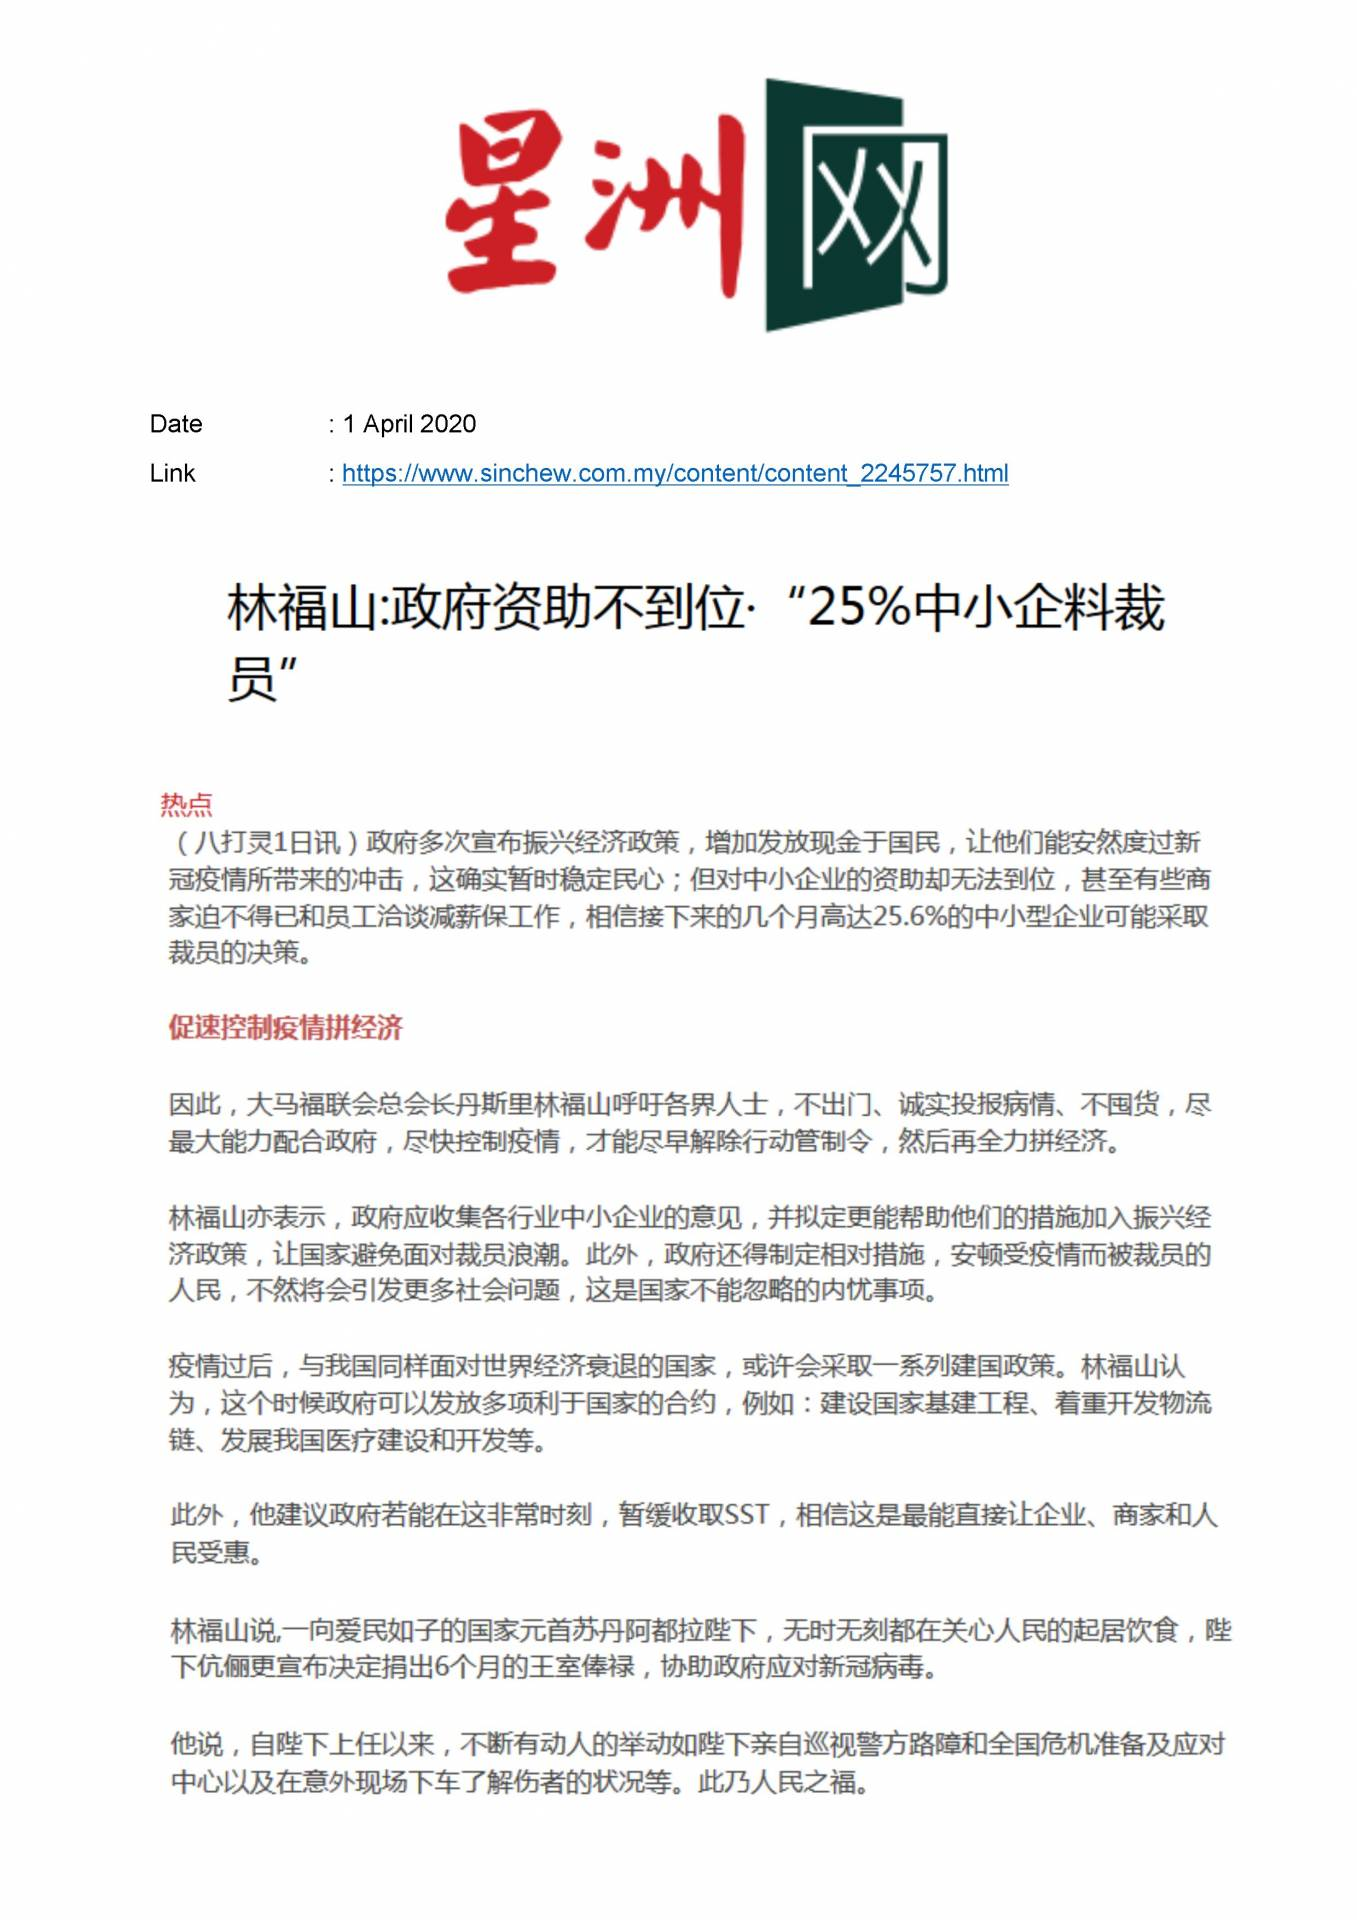 2020.04.01 Sin Chew Online - Lim Hock San said 25pct of SMEs expected to layoff